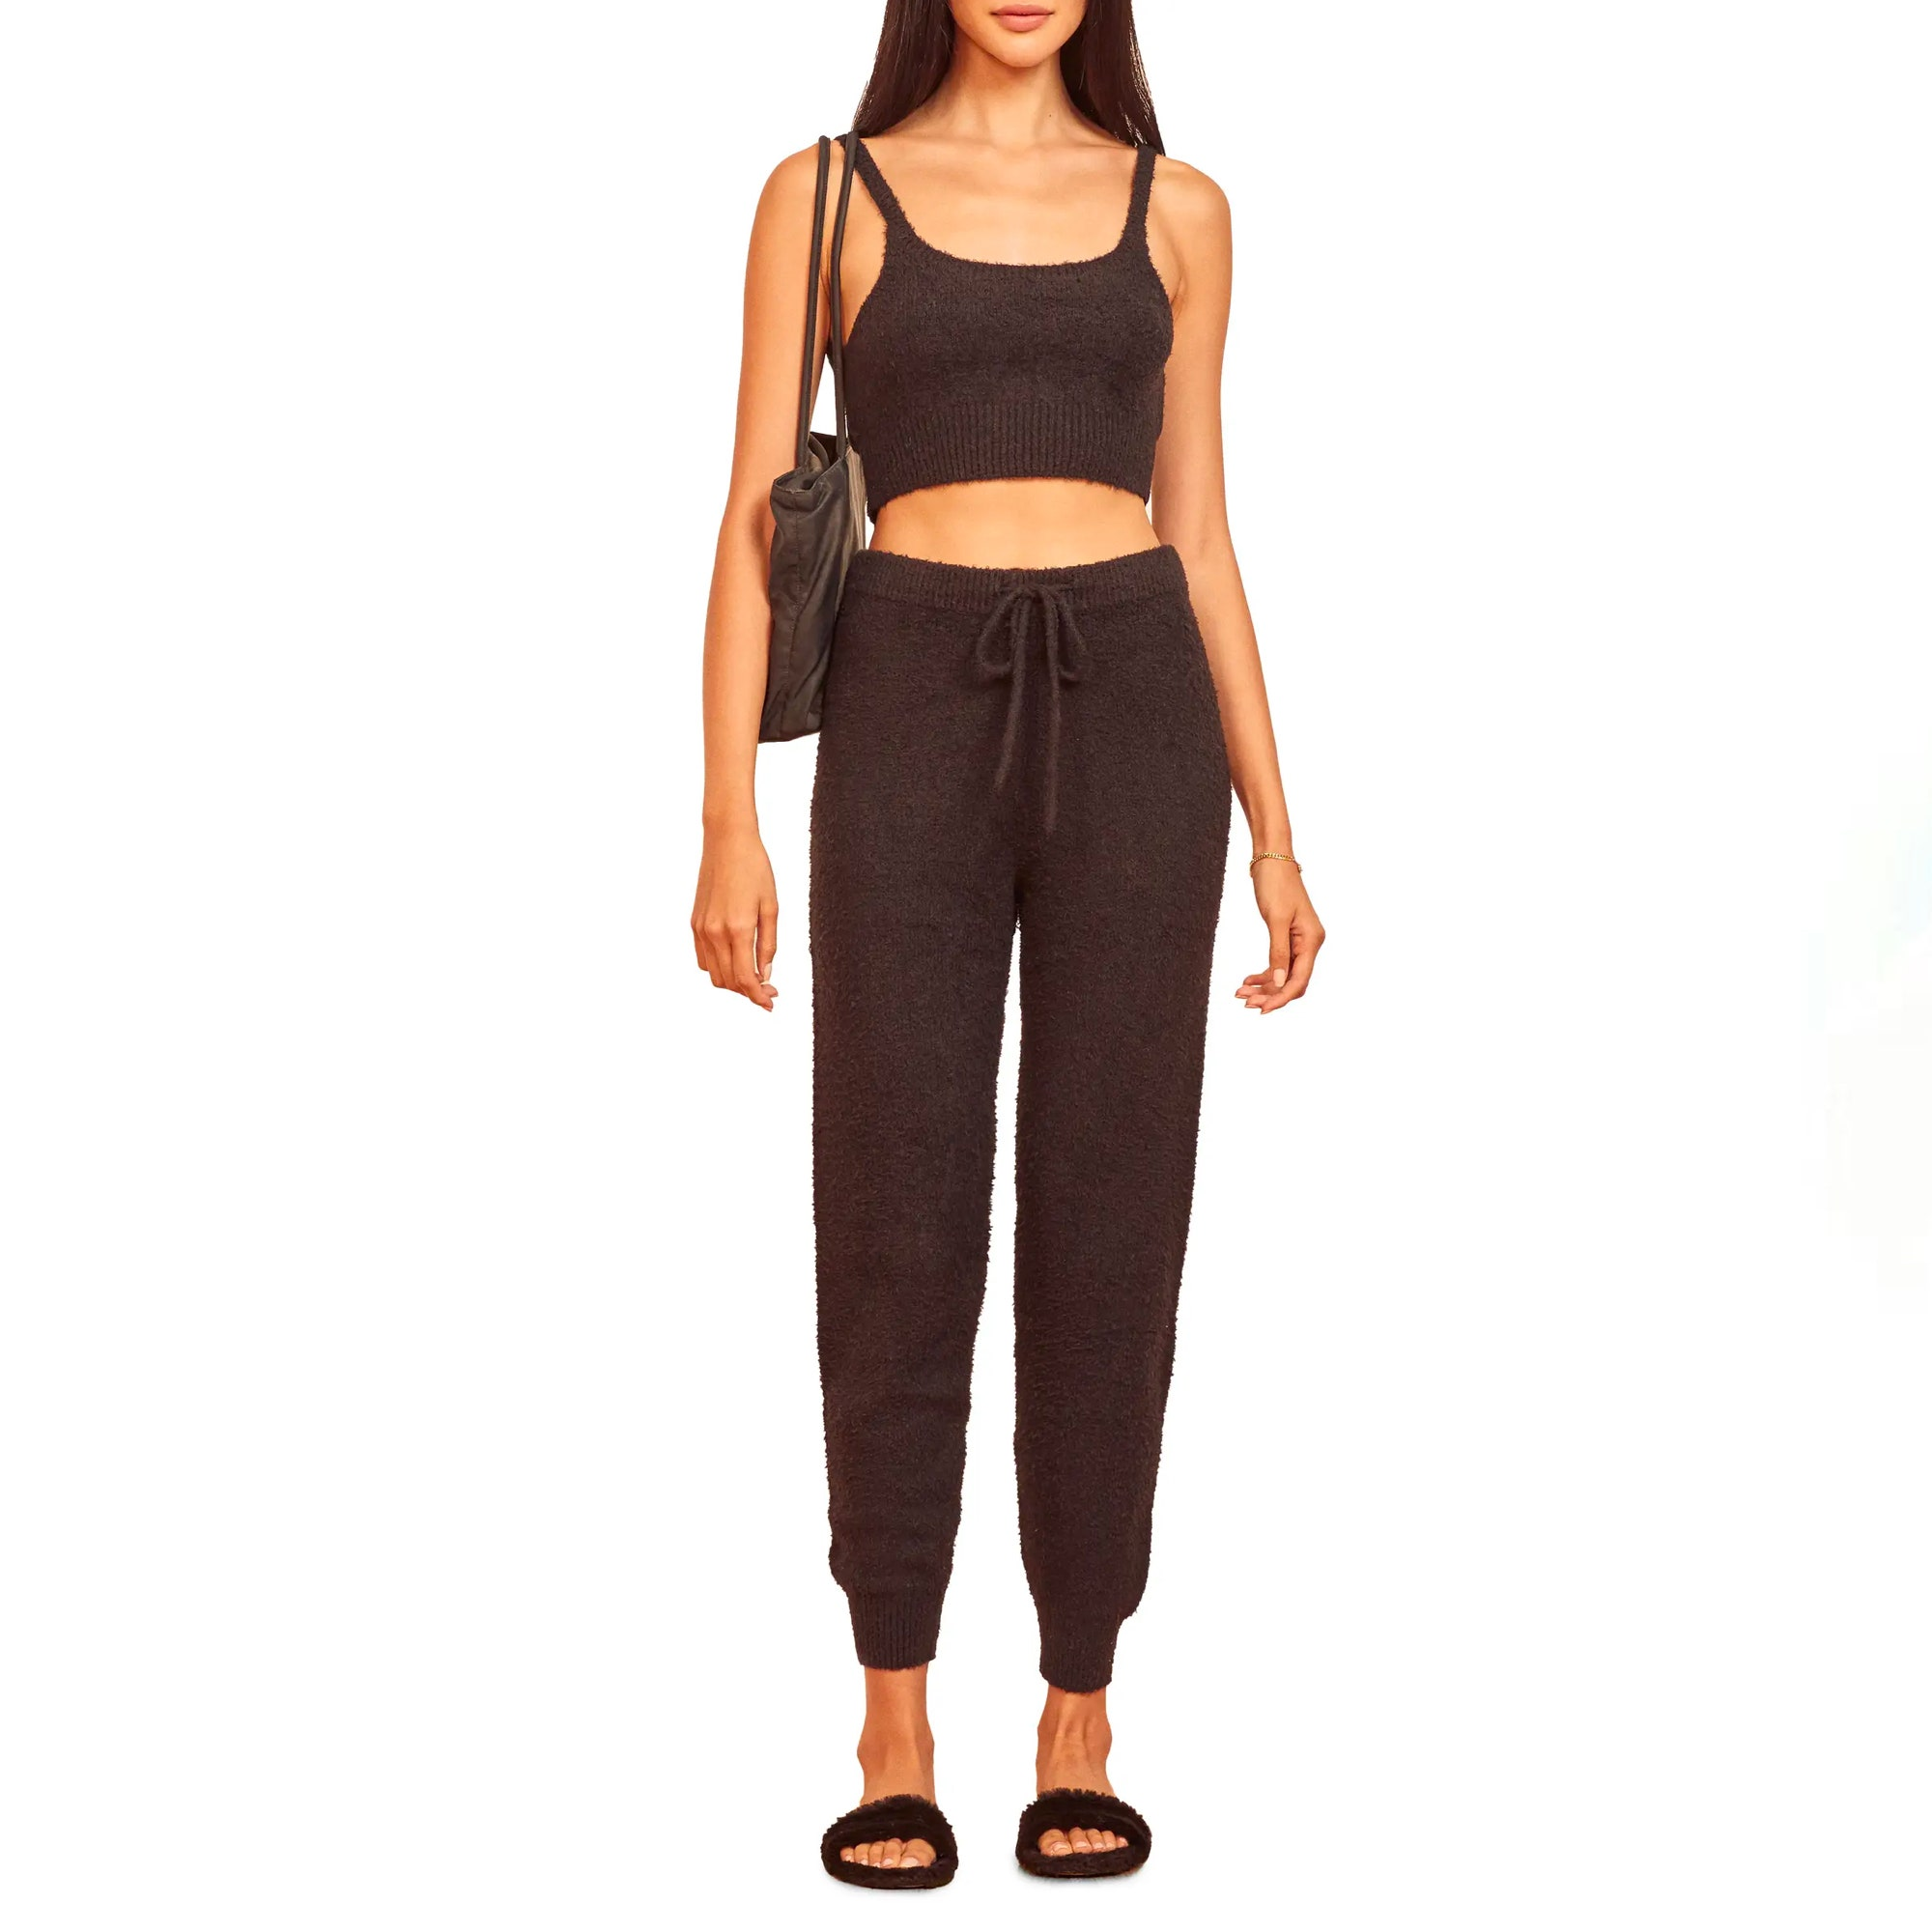 model wearing black joggers and matching tank top